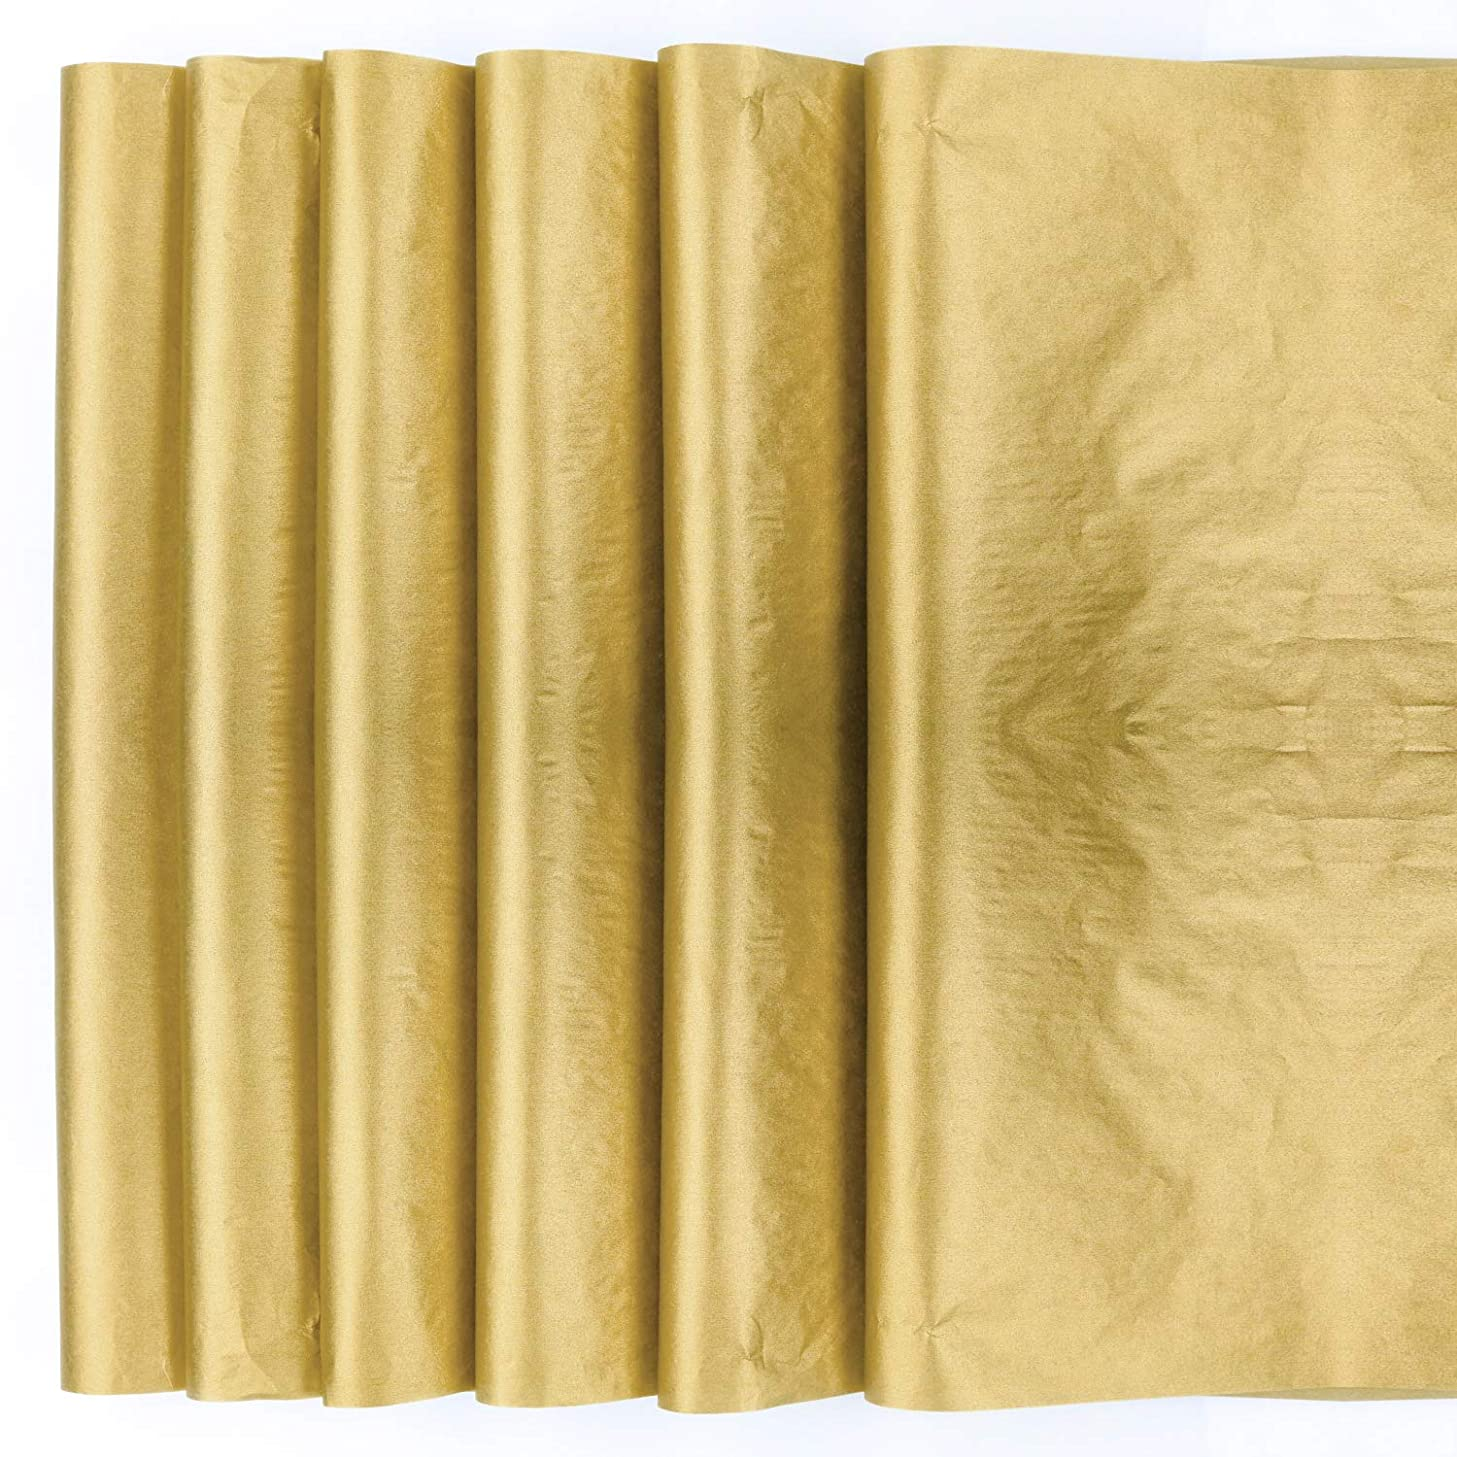 Teemico 30 Sheets Gift Wrapping Tissue Paper Antique Gold Metallic Gift Wraps Tissue Papers for Gift Bags Box Lining Wine Package,20x 28 inches